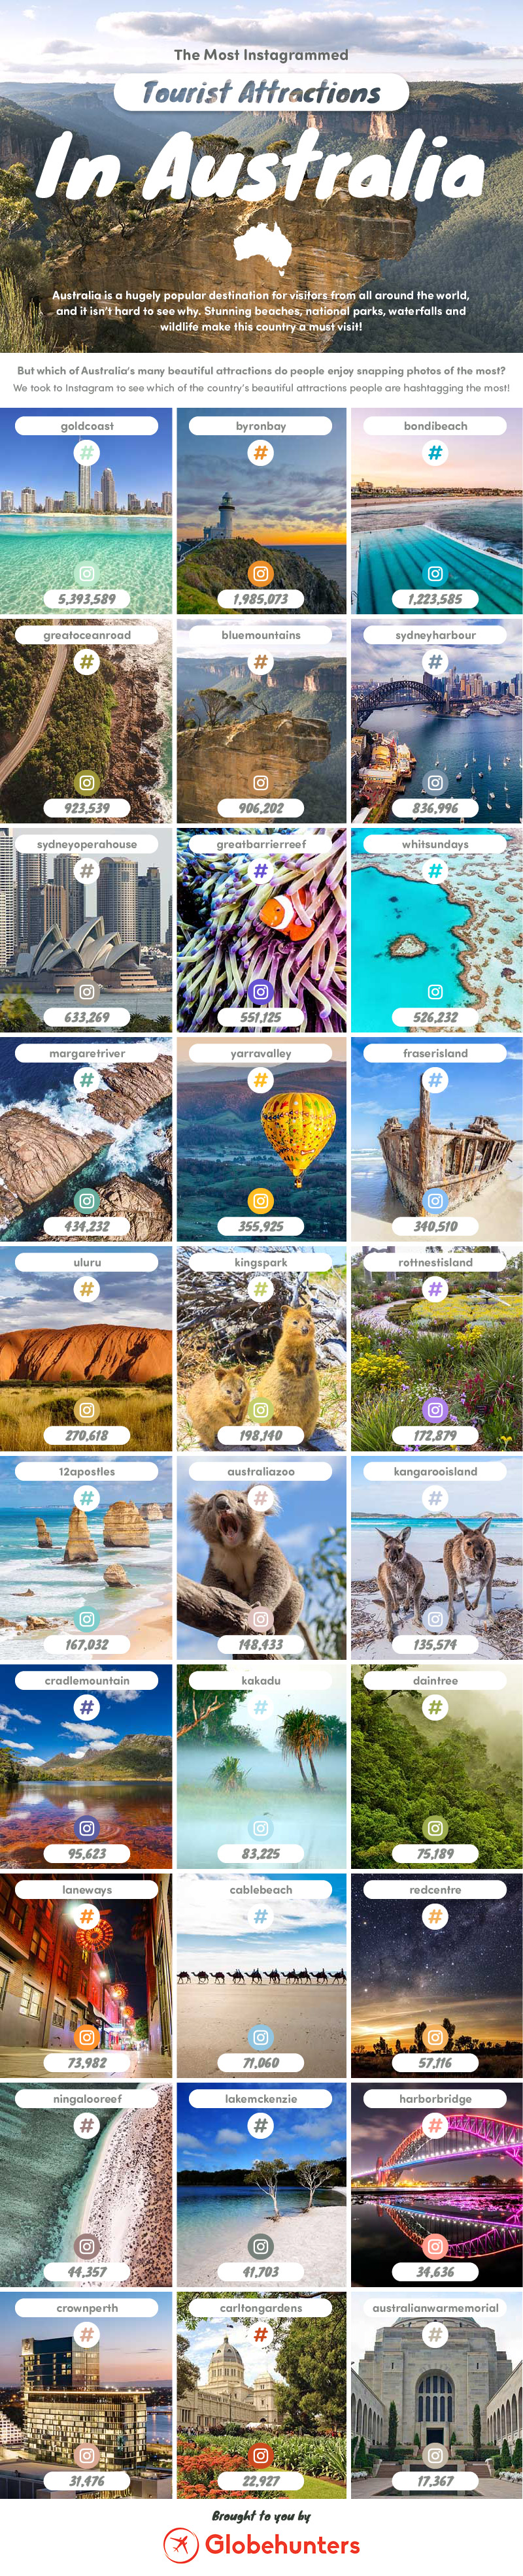 Revealed Australia's Most Instagrammed Tourist Attractions